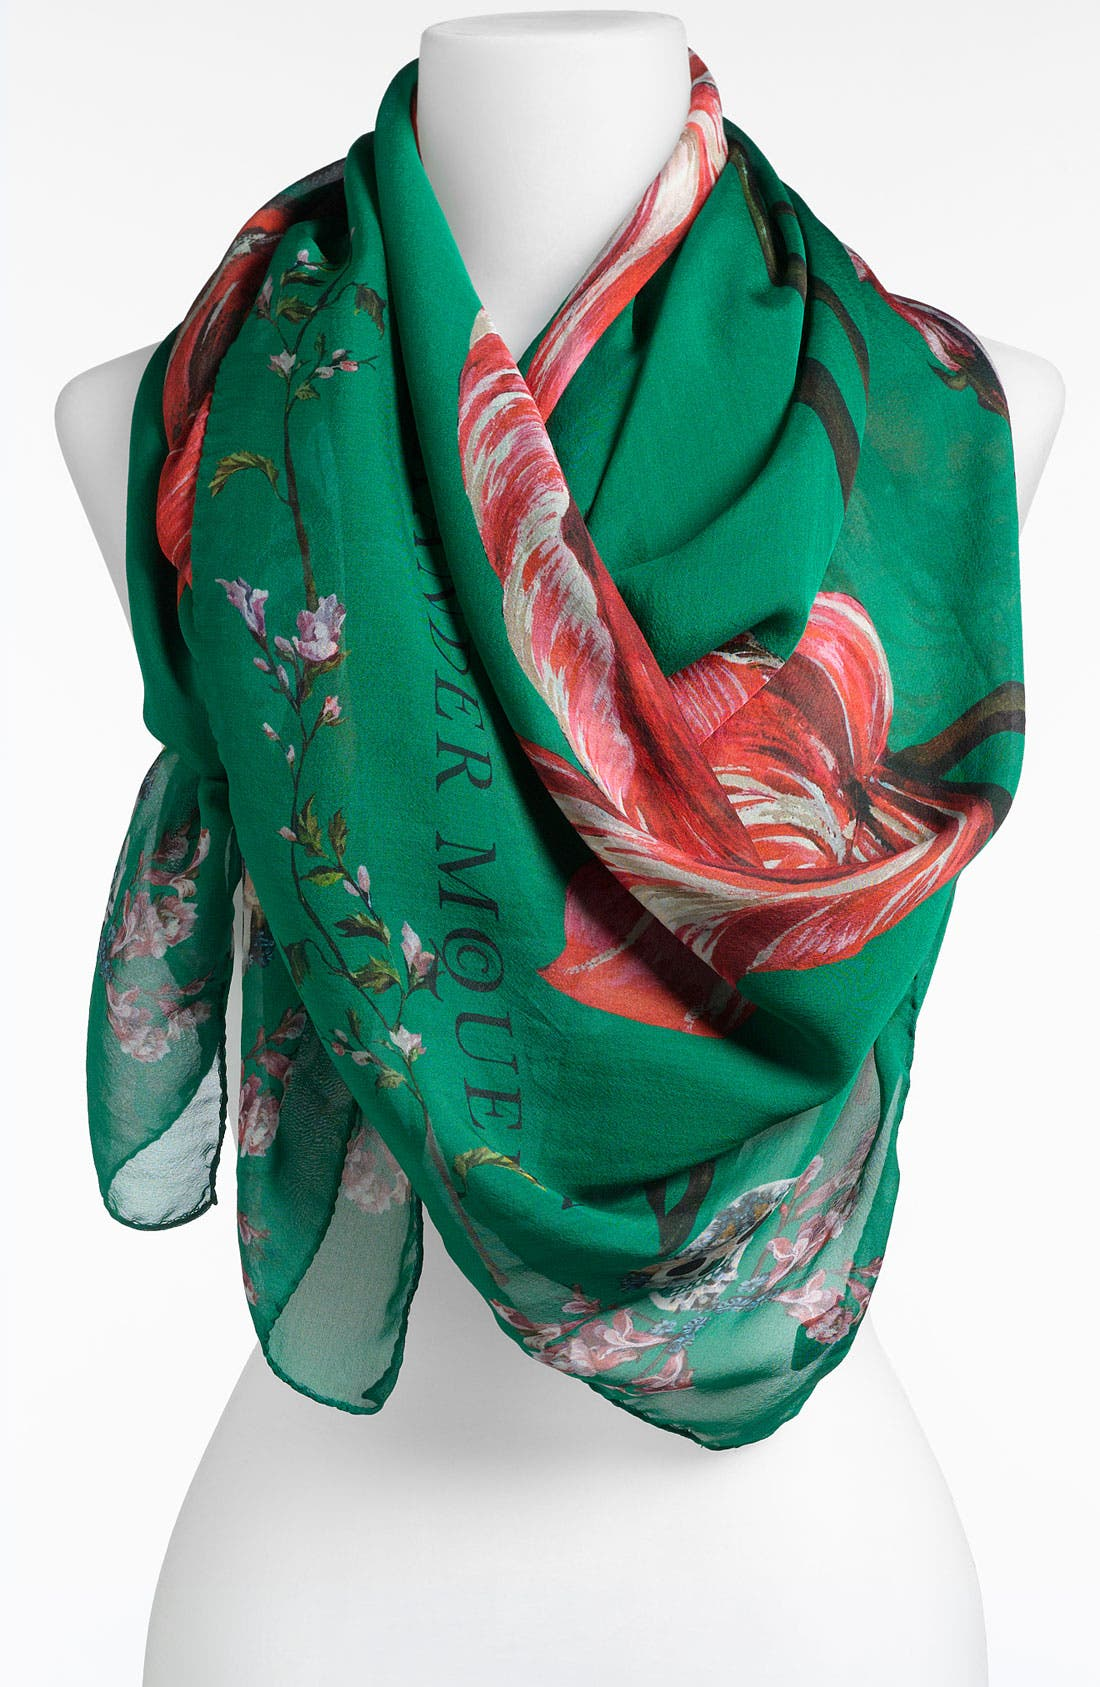 Alternate Image 1 Selected - Alexander McQueen 'Tulip Skull' Scarf